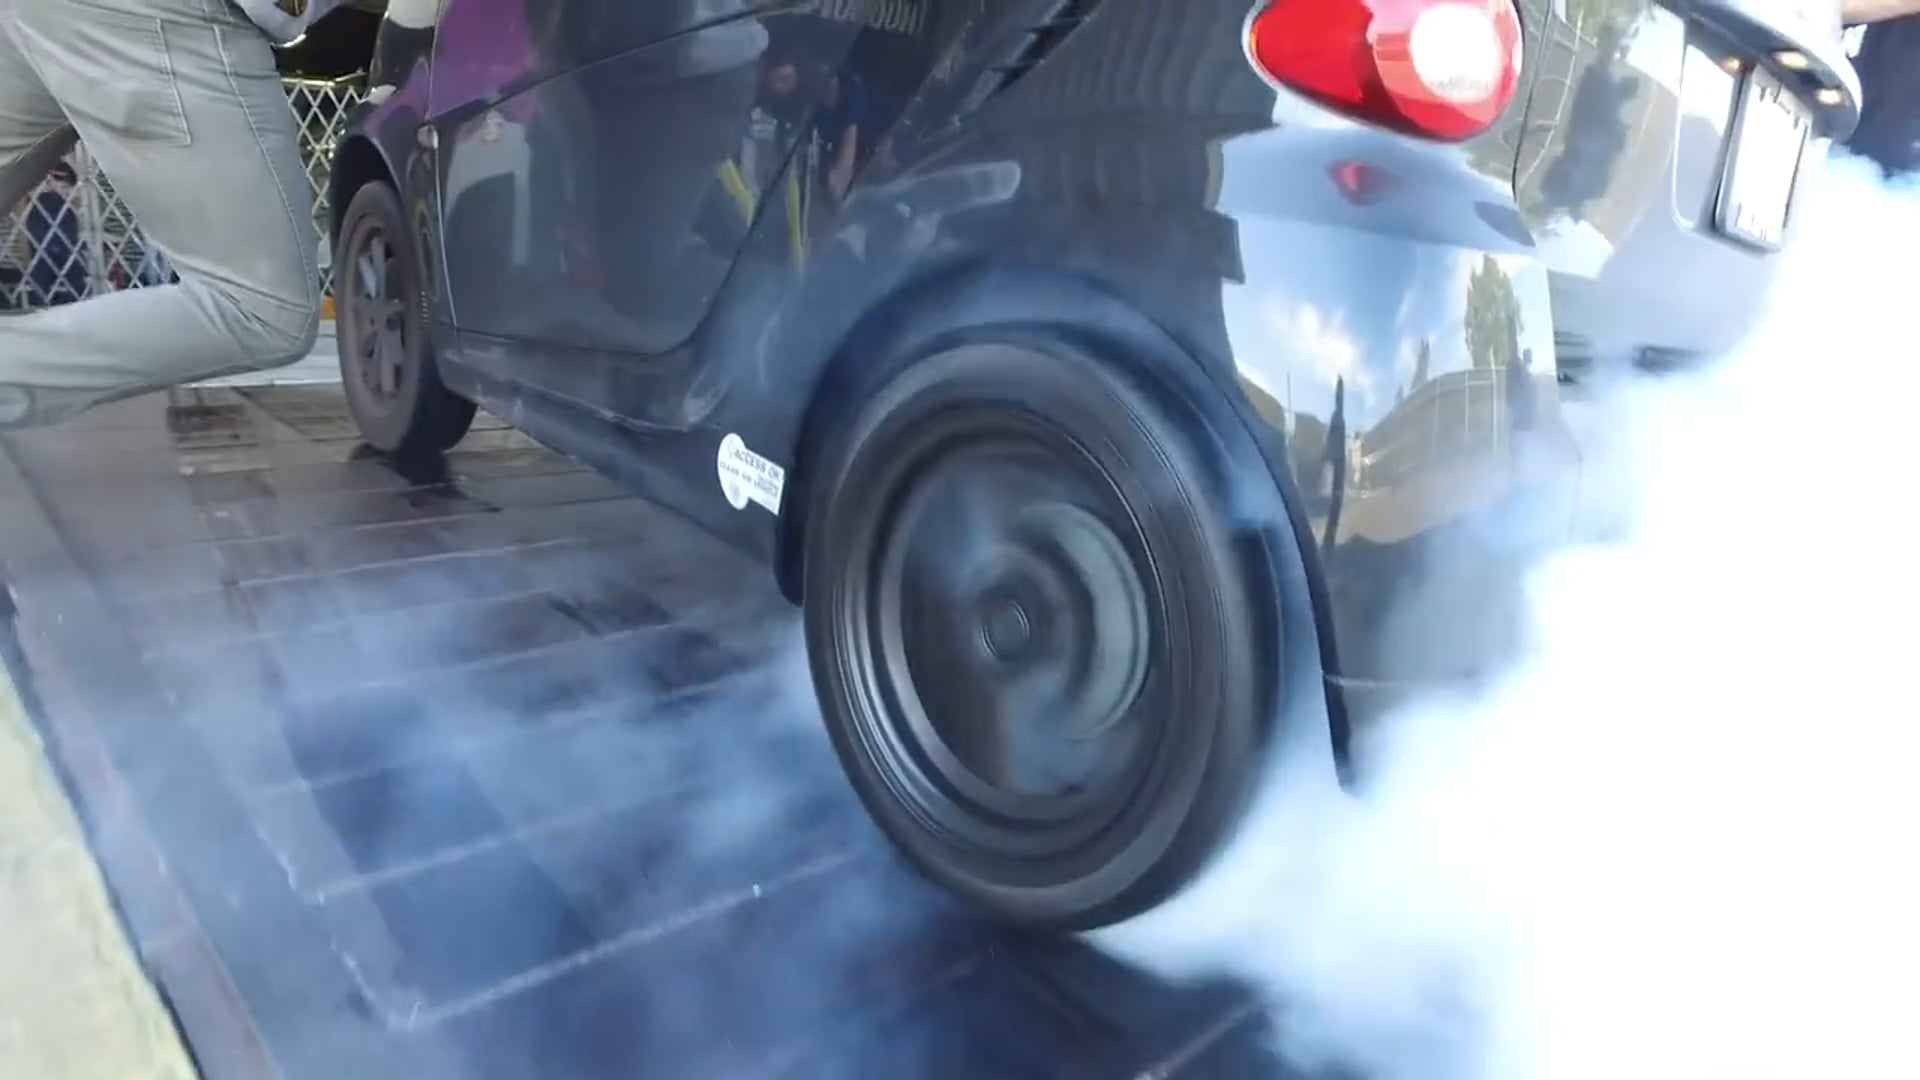 Daily Transmission | Electric Smart Car Burnouts Donuts and Other Bad Ideas